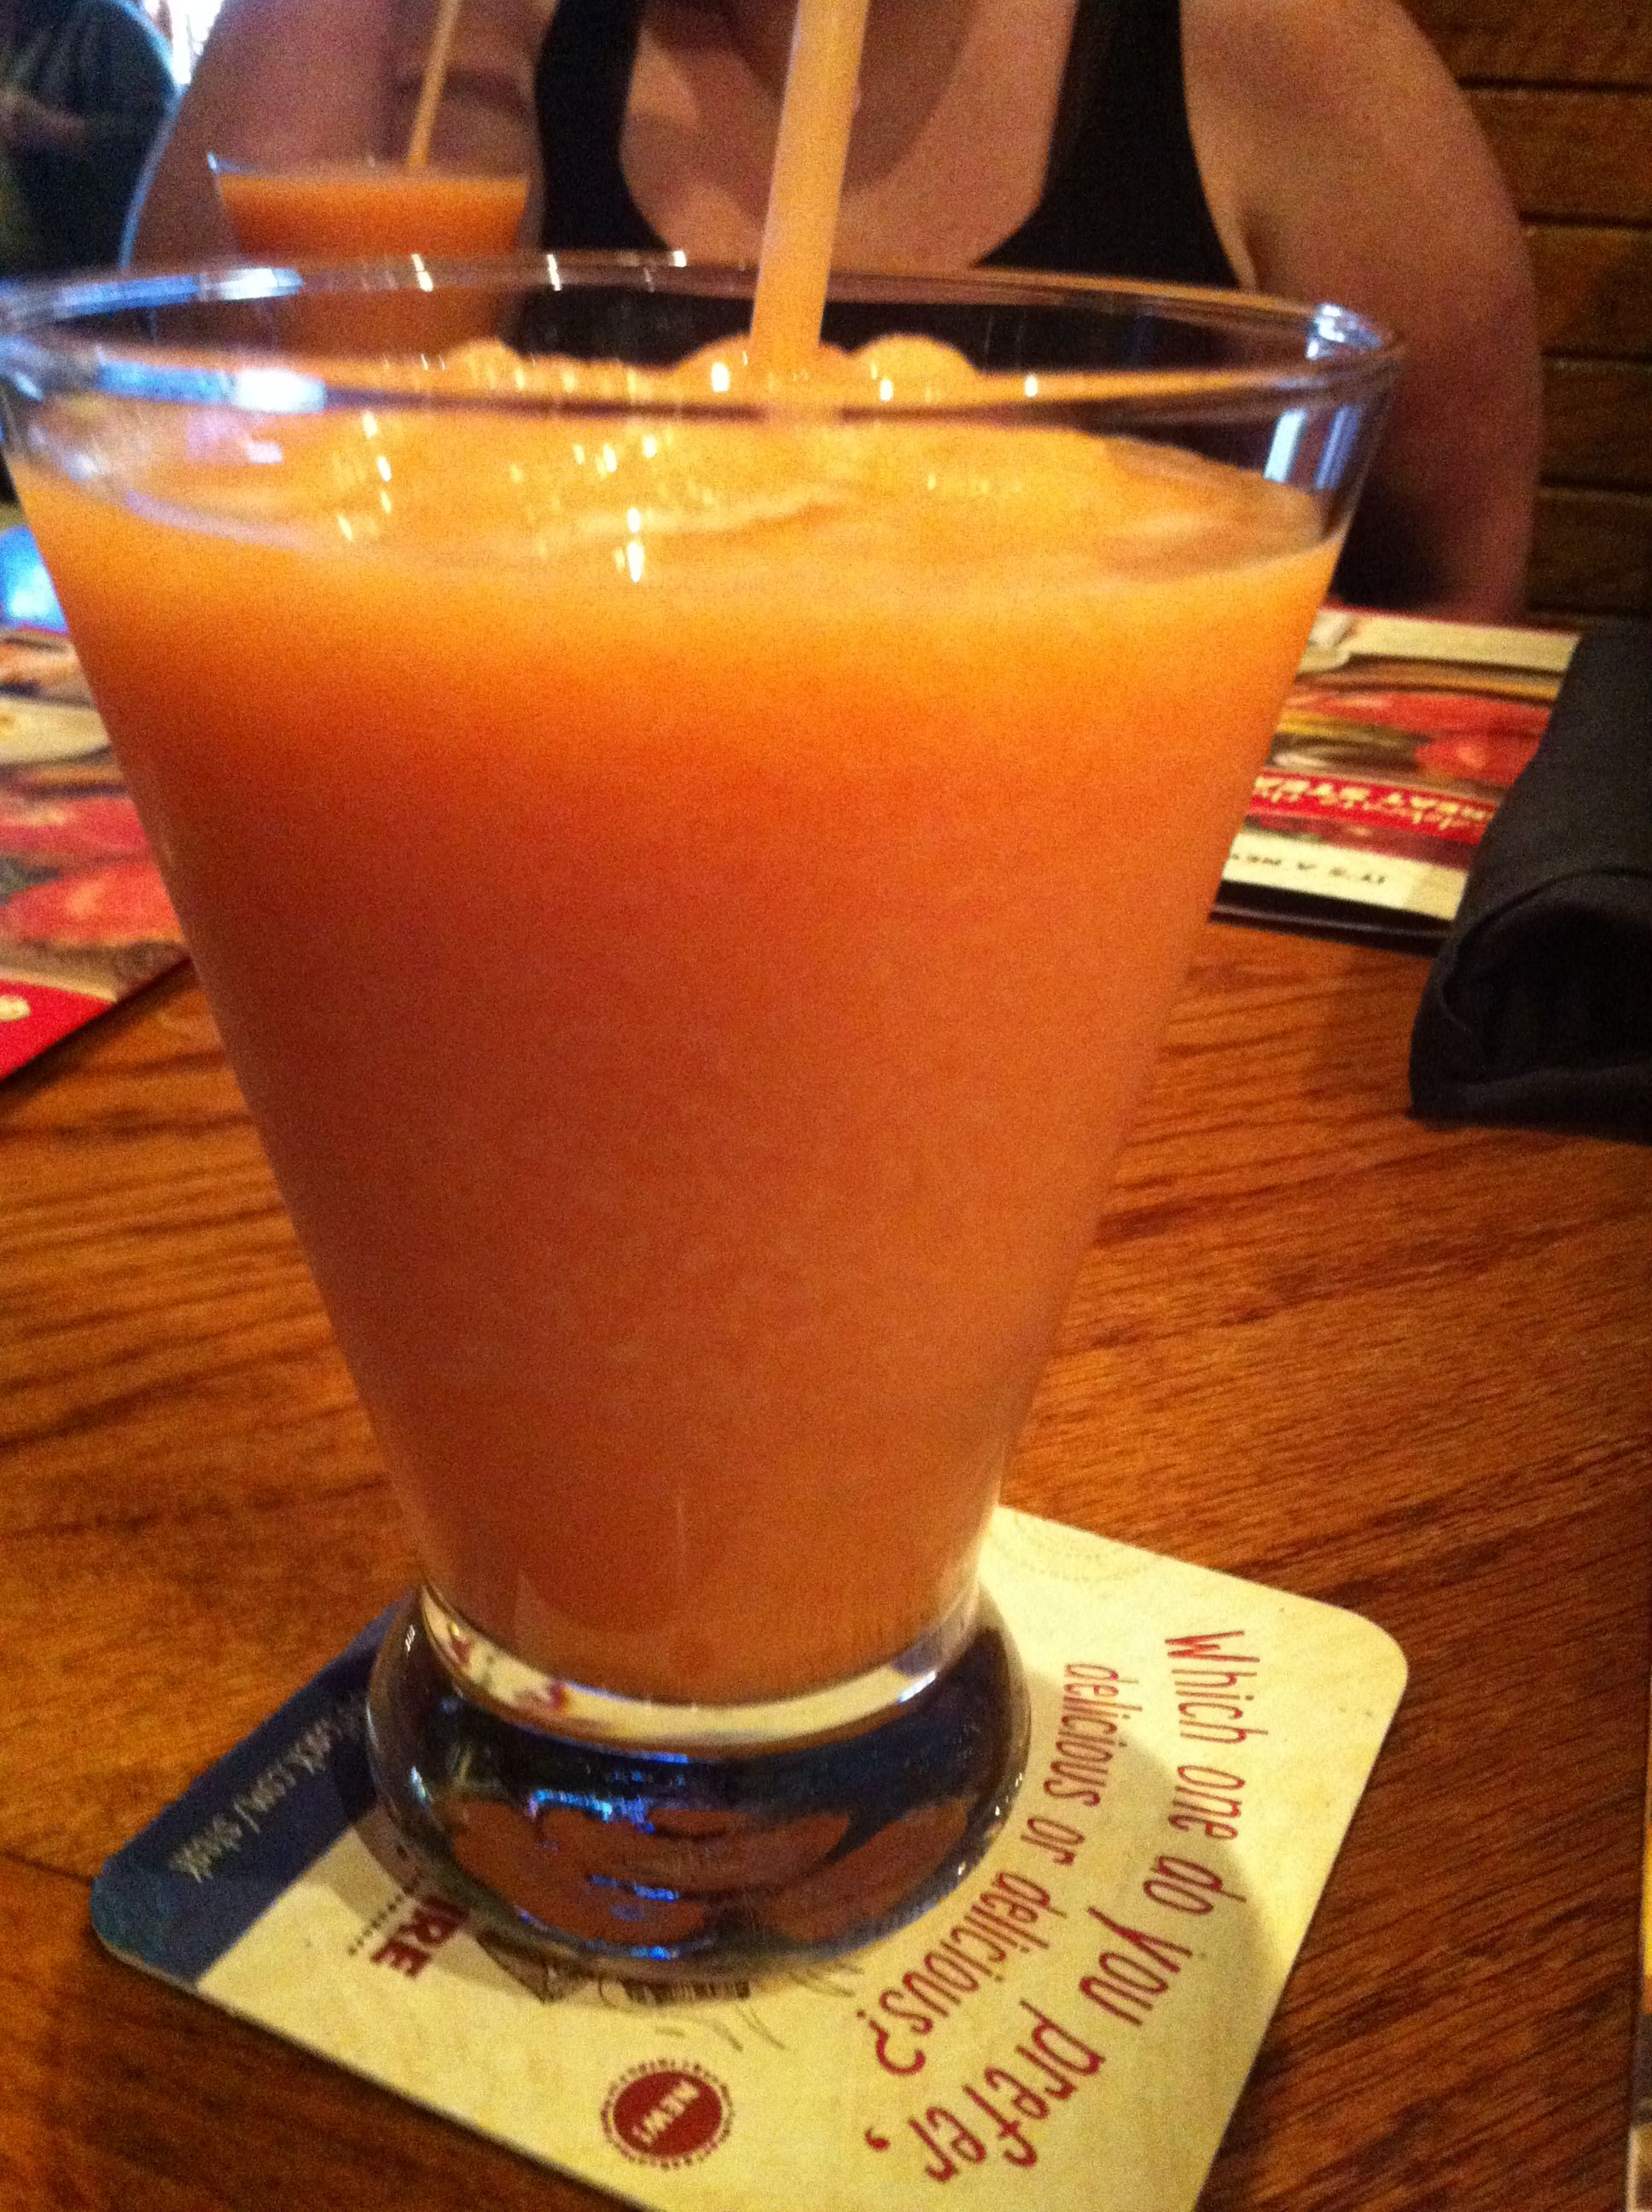 Wallaby Darned From Outback 1 Cup Frozen Sliced Peaches 2 Ounces Champagne 1 Ounce Peach Schnapps 1 O Frozen Drinks Wallaby Darned Recipe Peach Schnapps